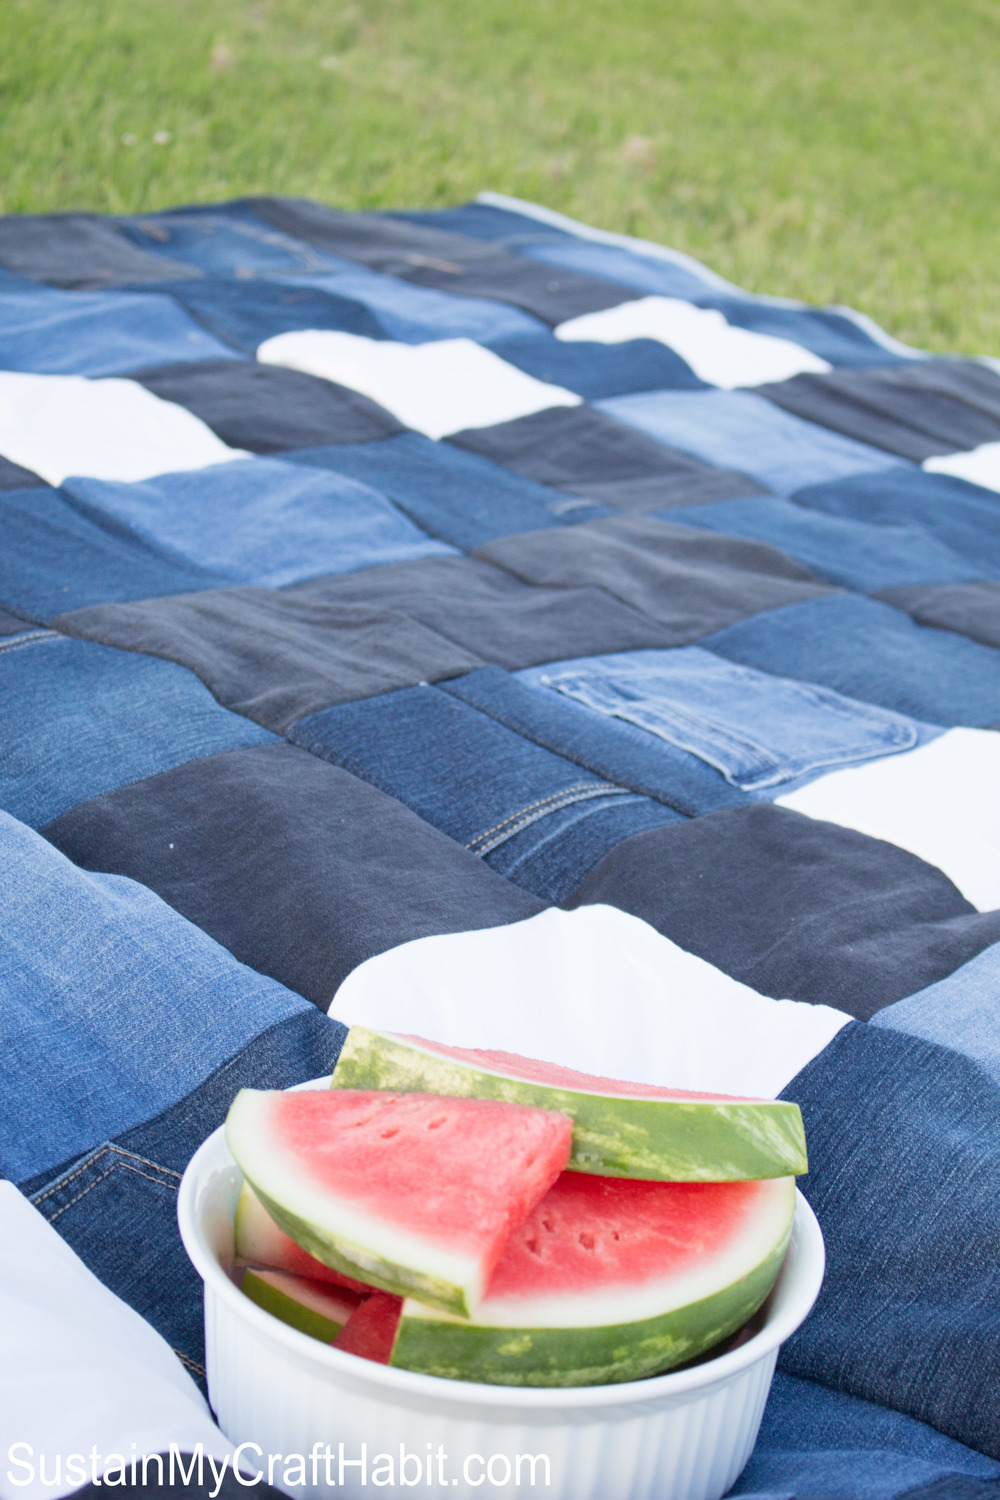 A bowl filled with watermelon resting on the new picnic blanket